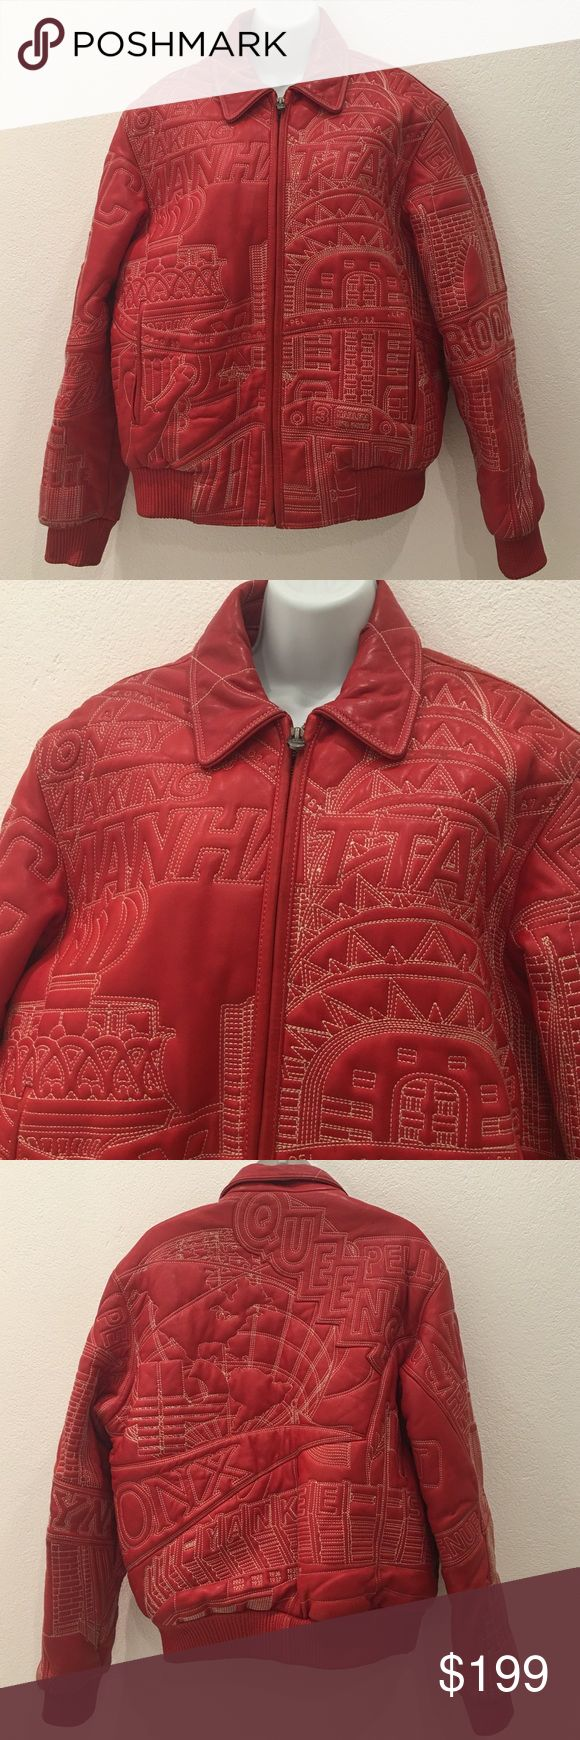 """Pelle Pelle by Marc Buchanan Red Leather Jacket 12 Preowned Authentic Embroidered Pelle Pelle by Marc Buchanan Red Leather Jacket 12/ L """"Money Making Manhattan"""" Zip up jacket. GOR-GOEUS!!! Has small tear in collar. Please look at pictures for better reference. Happy shopping! Pelle Pelle Jackets & Coats"""